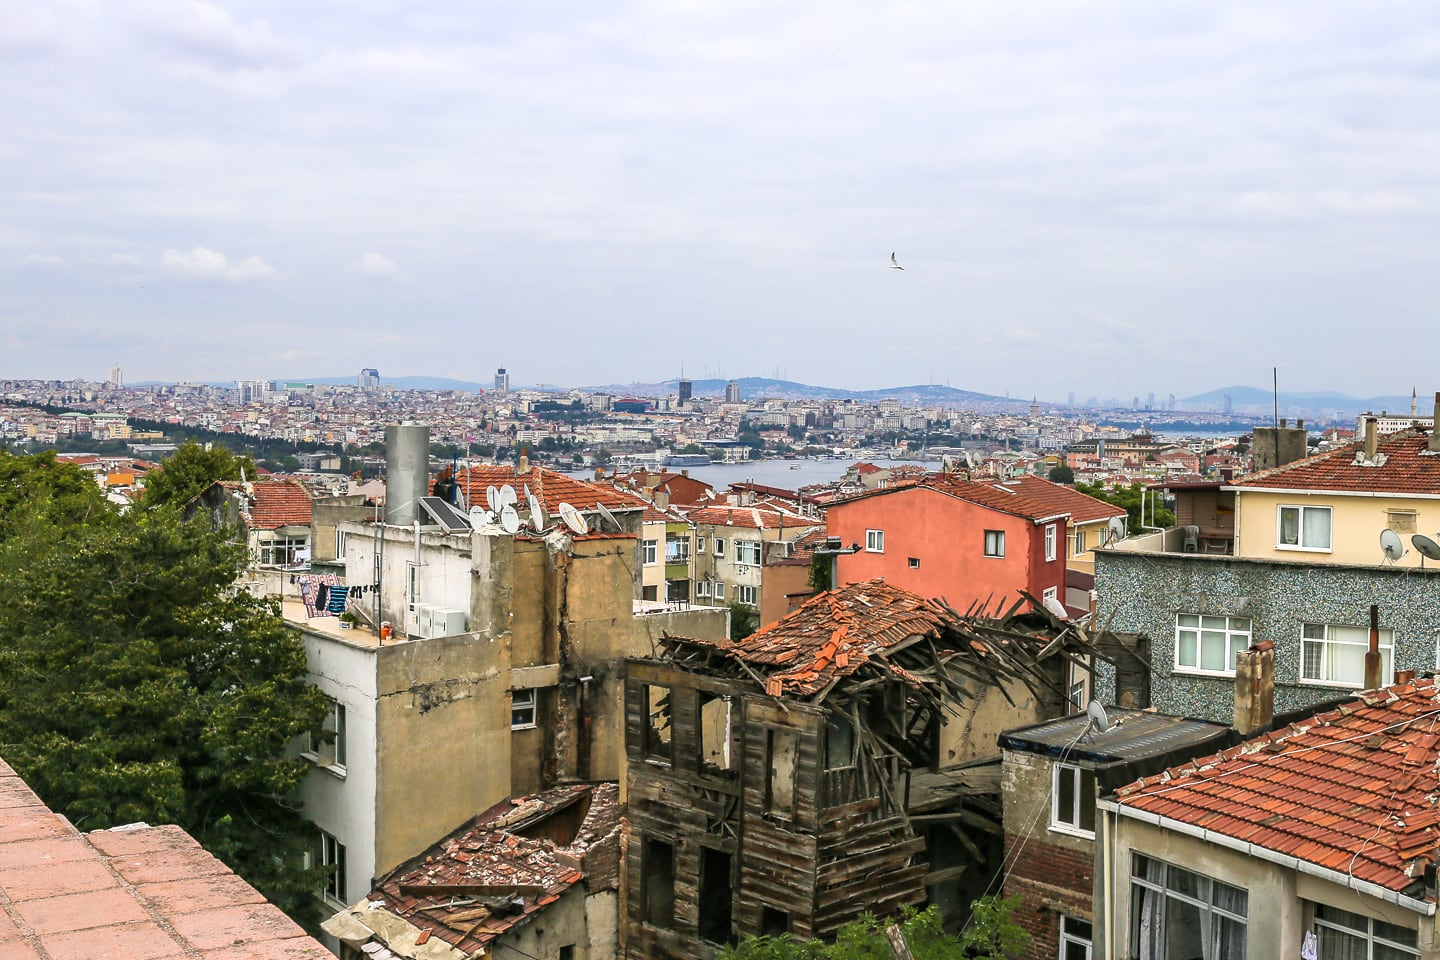 view of Istanbul neighborhood from city walls